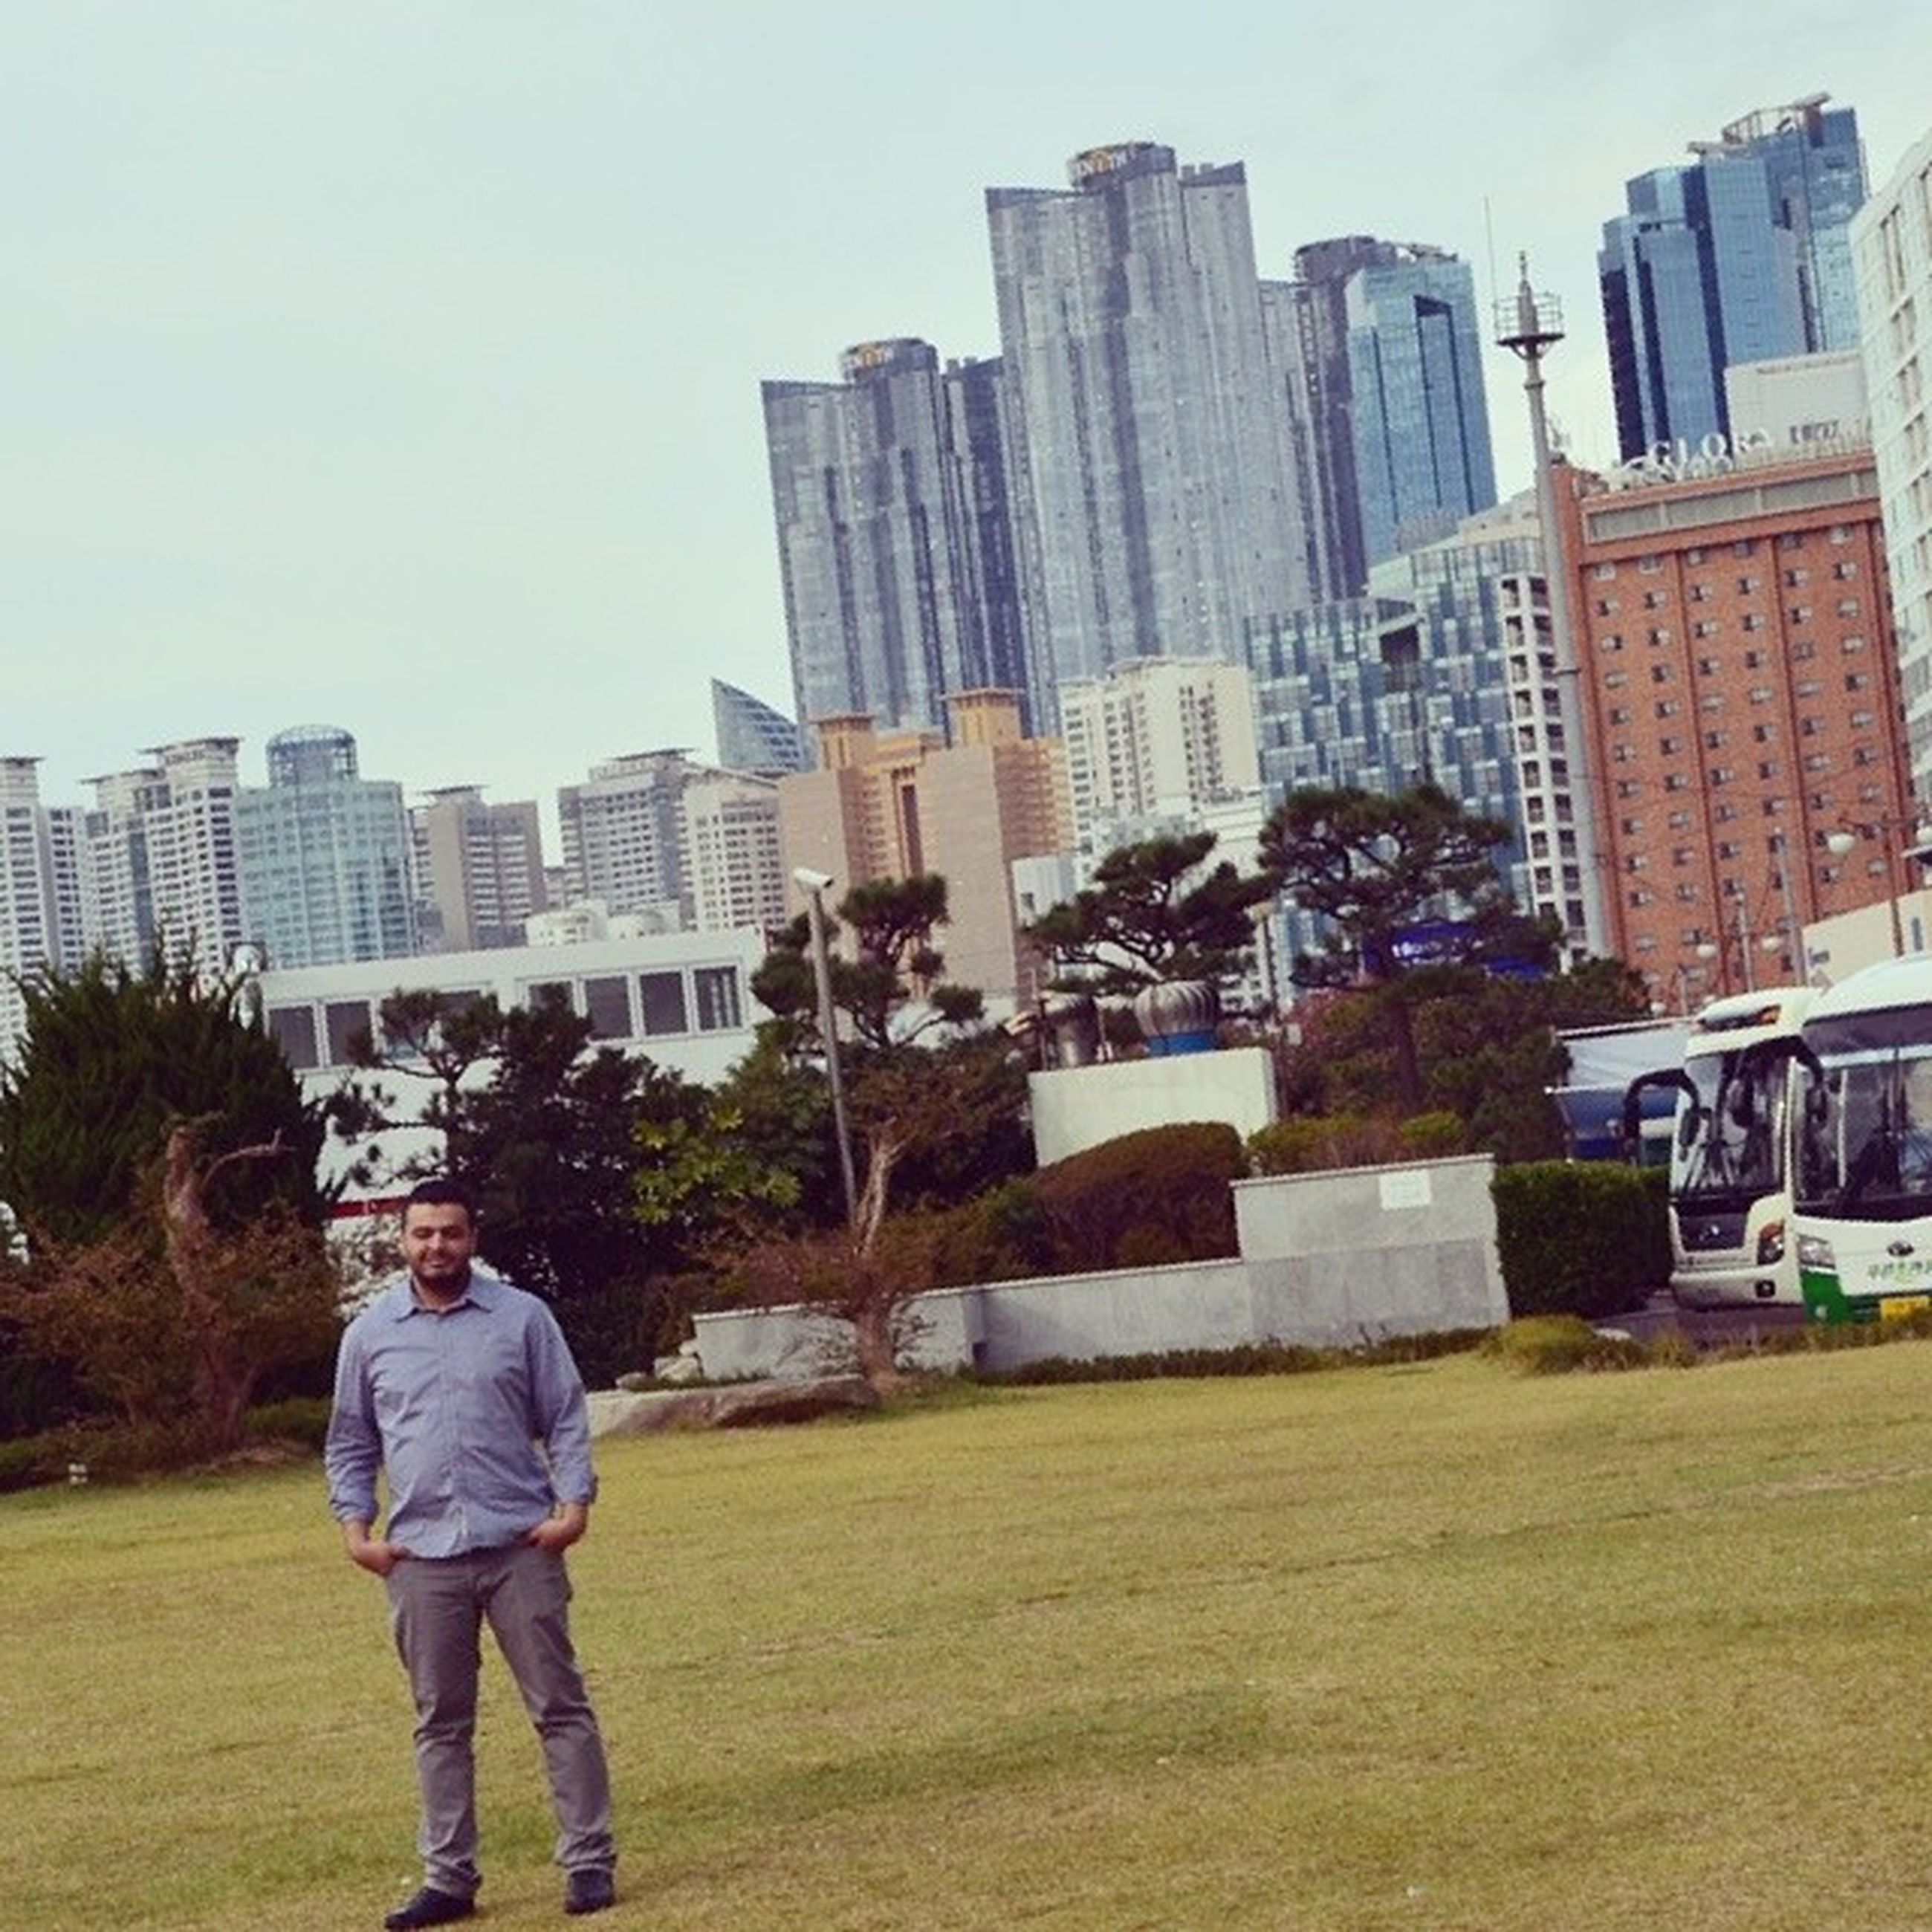 building exterior, architecture, built structure, city, lifestyles, grass, casual clothing, leisure activity, full length, rear view, men, sky, standing, tree, day, city life, building, person